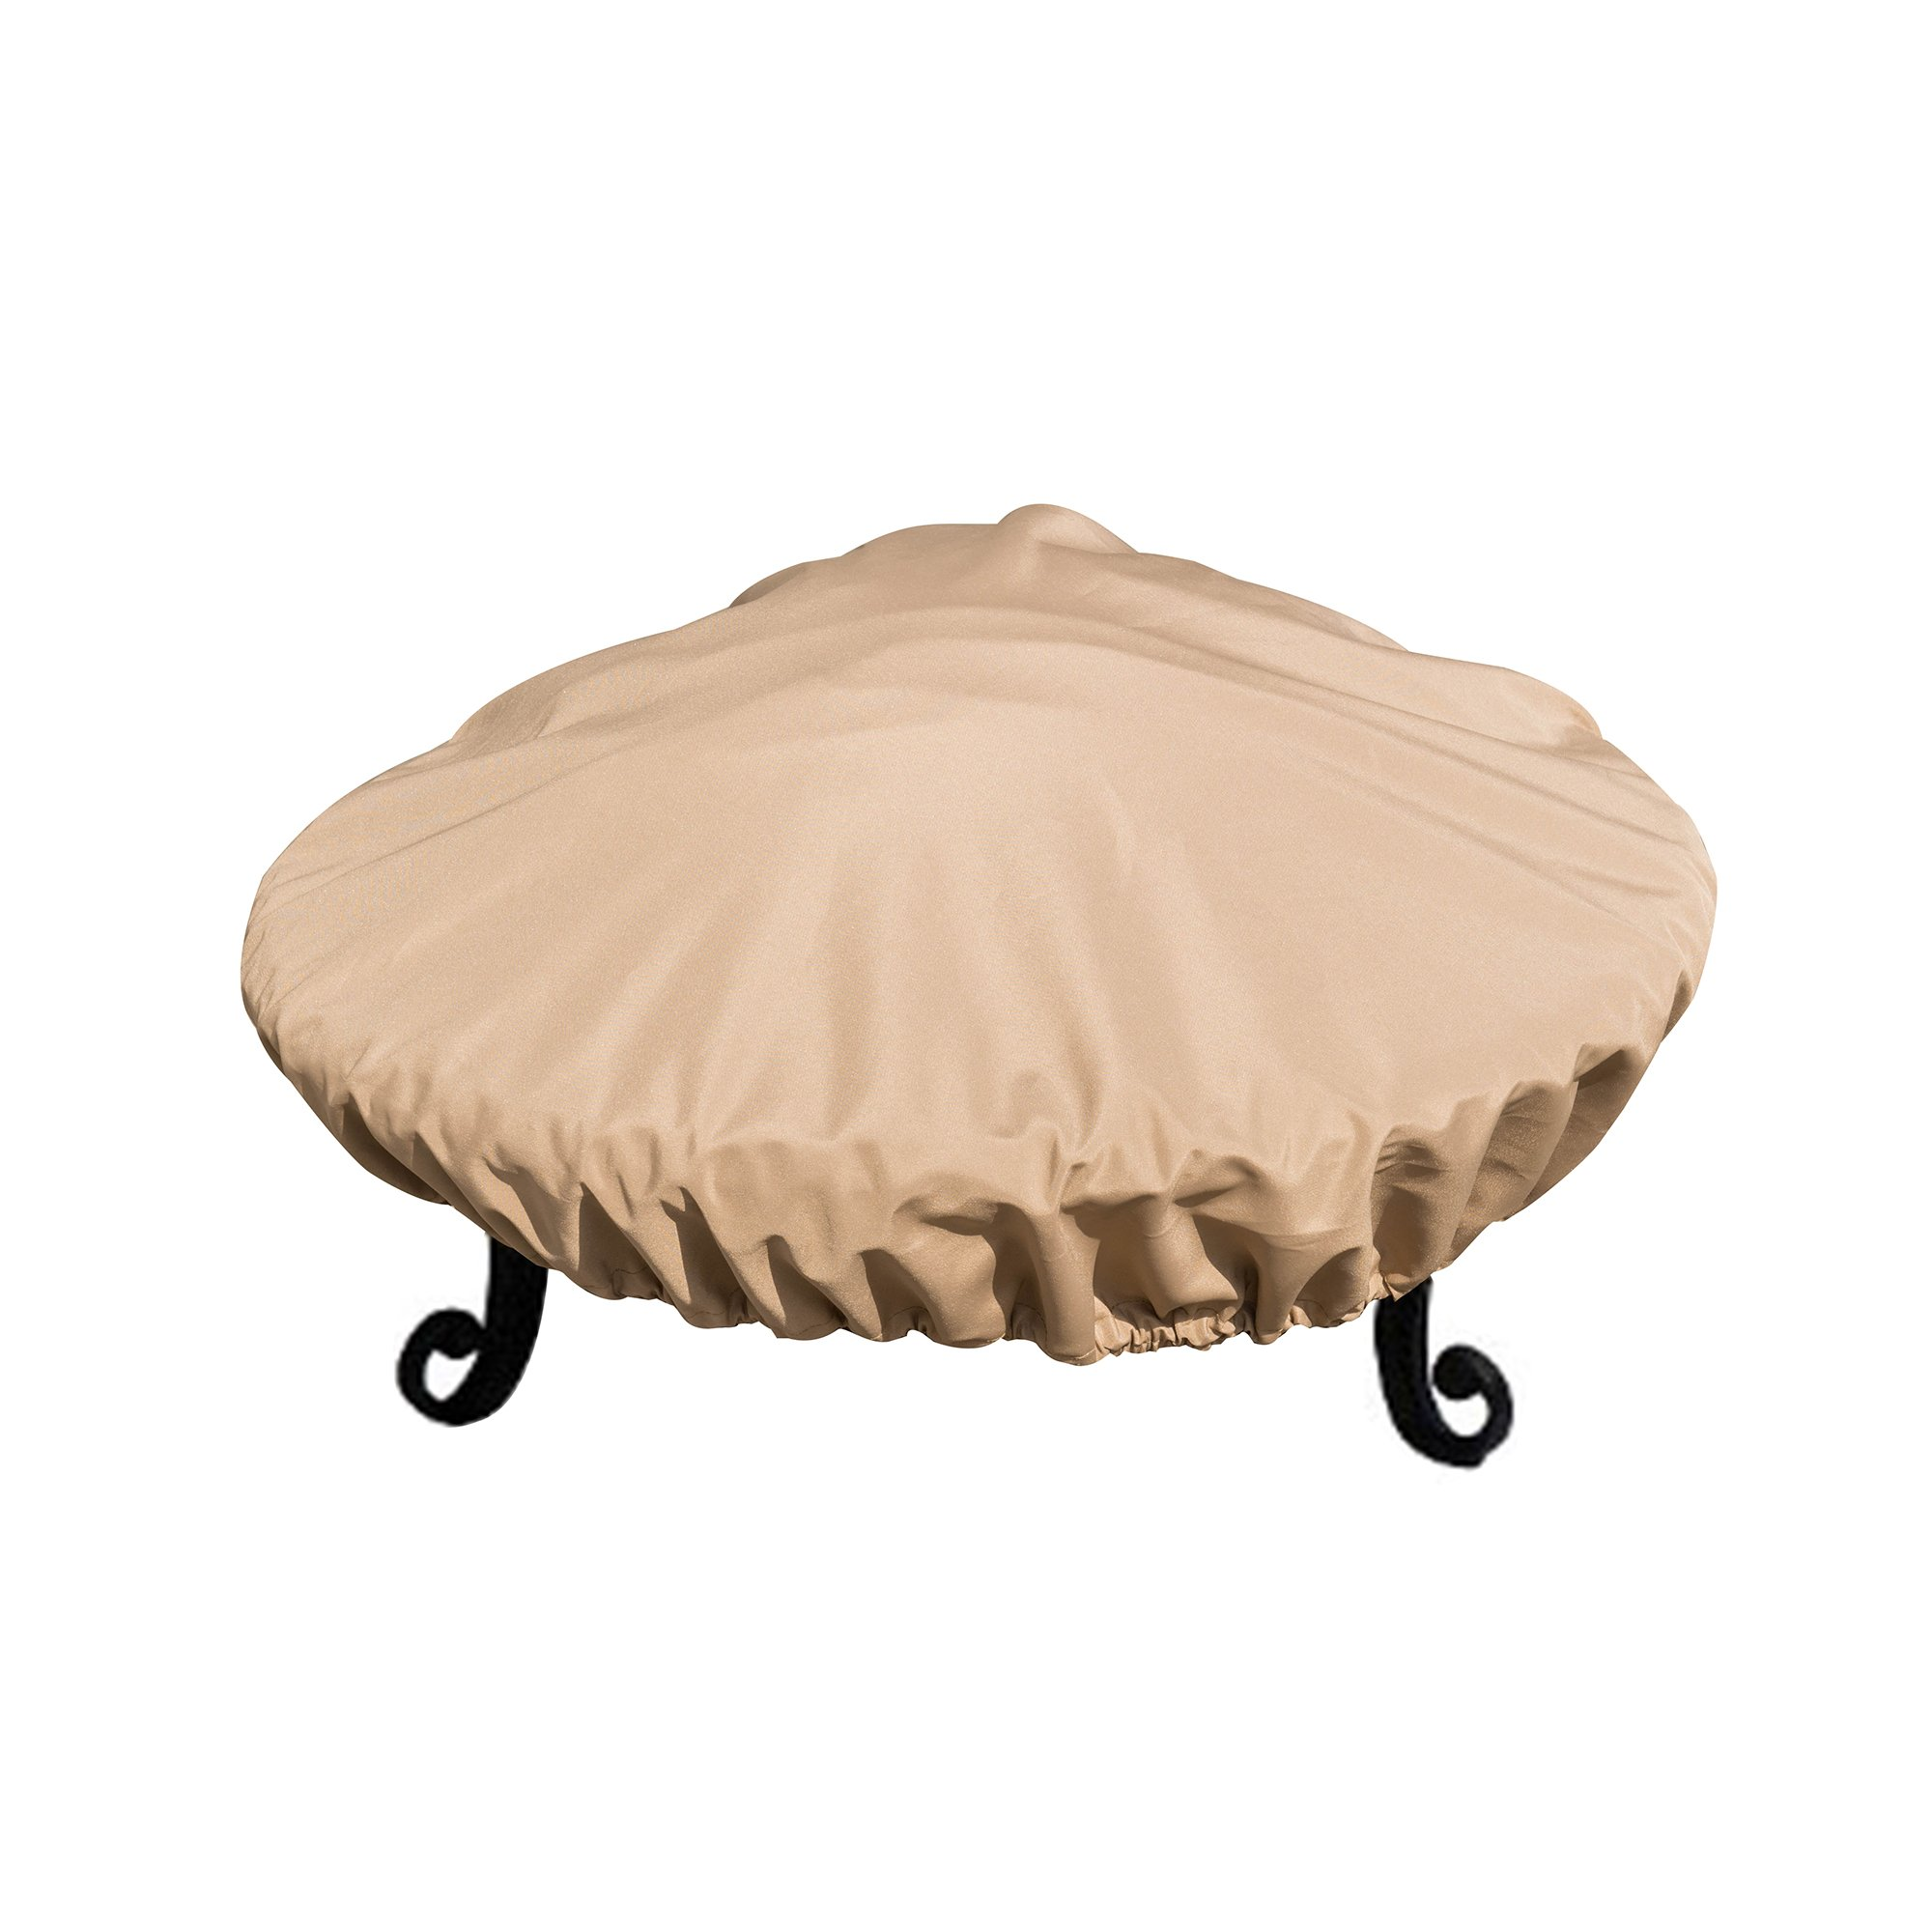 Island Retreat NU570-37 Fire Pit Cover 34, 29-32-inch, Tan by Island Retreat